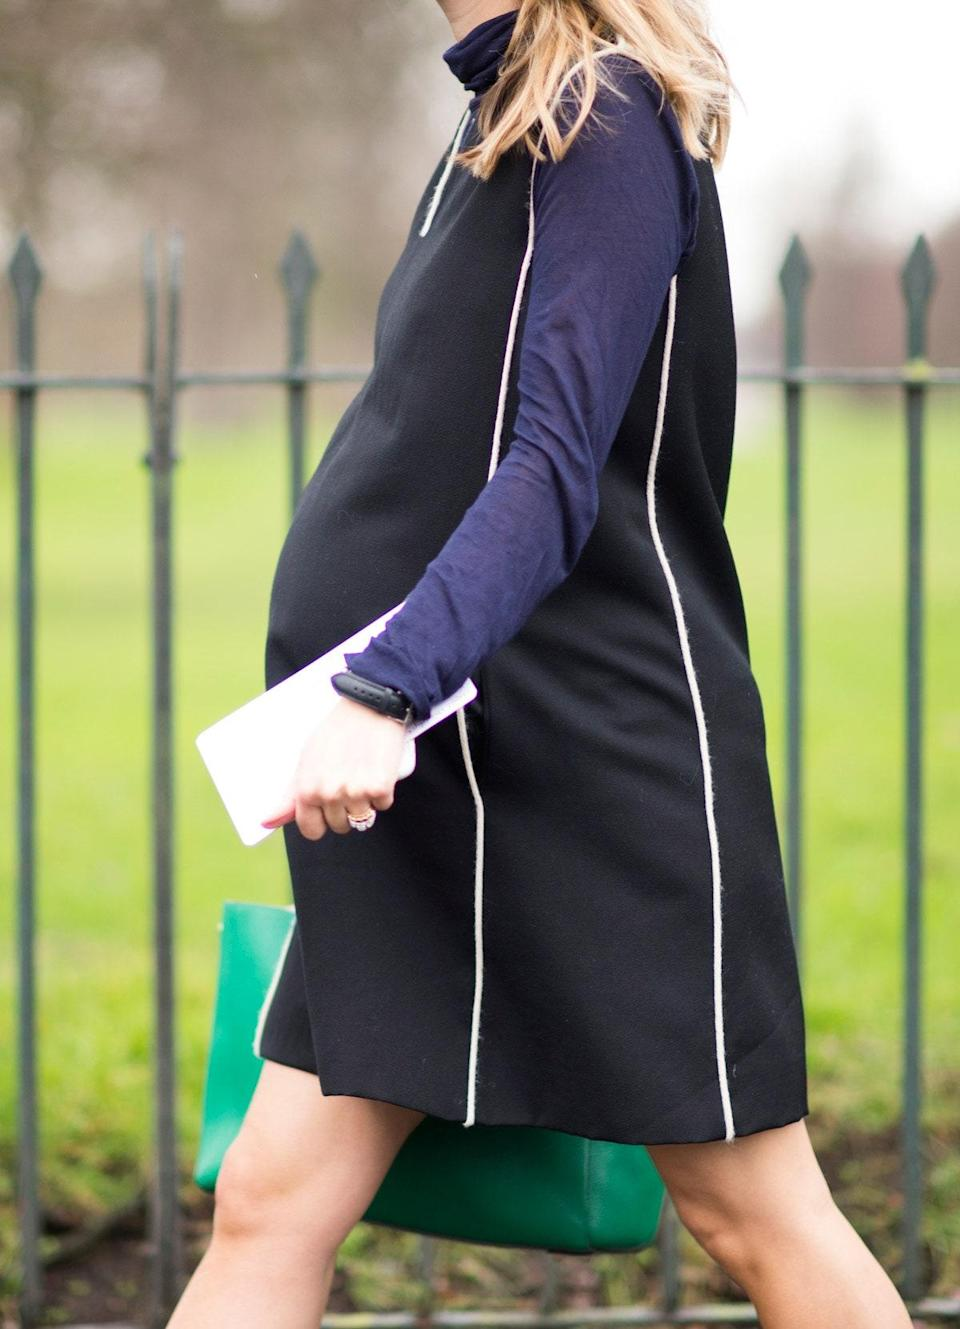 """At seven or eight months in, consider creating a mini """"pregnancy closet"""" out of everything in your wardrobe. """"At a certain point, it just doesn't feel good to have to go through your closet and find what still fits or what doesn't look good; it's frustrating!"""" says Dueñas Jacobs. """"Figure out what works for you, and just ride it out. It was so much easier for me get dressed by only looking at 30 pieces. It's a little like living out of a suitcase."""" Sanchez Lincoln recommends developing a uniform; hers """"consisted of maternity leggings—find some that are really comfortable and have a full panel—and nice, solid maternity T-shirts or blouses that I could dress up or down,"""" as well as accessories and versatile <a href=""""https://www.glamour.com/gallery/35-chic-fall-jackets-and-light-winter-coats-shop?mbid=synd_yahoo_rss"""" rel=""""nofollow noopener"""" target=""""_blank"""" data-ylk=""""slk:jackets"""" class=""""link rapid-noclick-resp"""">jackets</a>."""